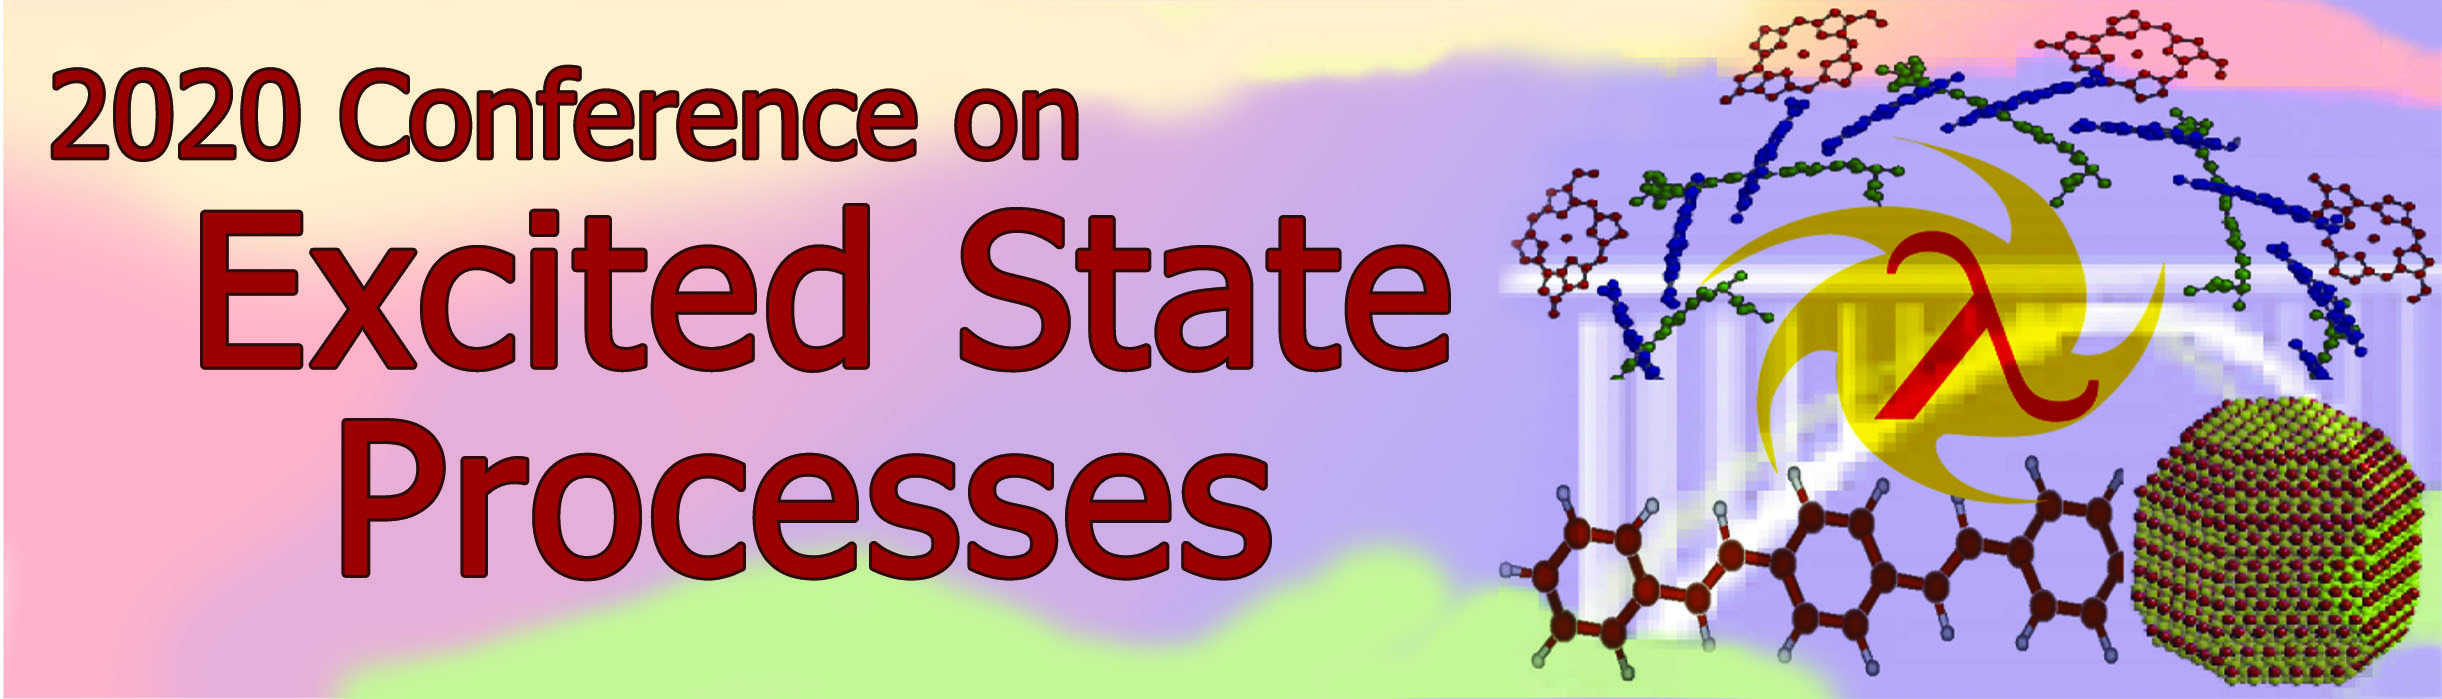 Conference on Excited State Processes 2020